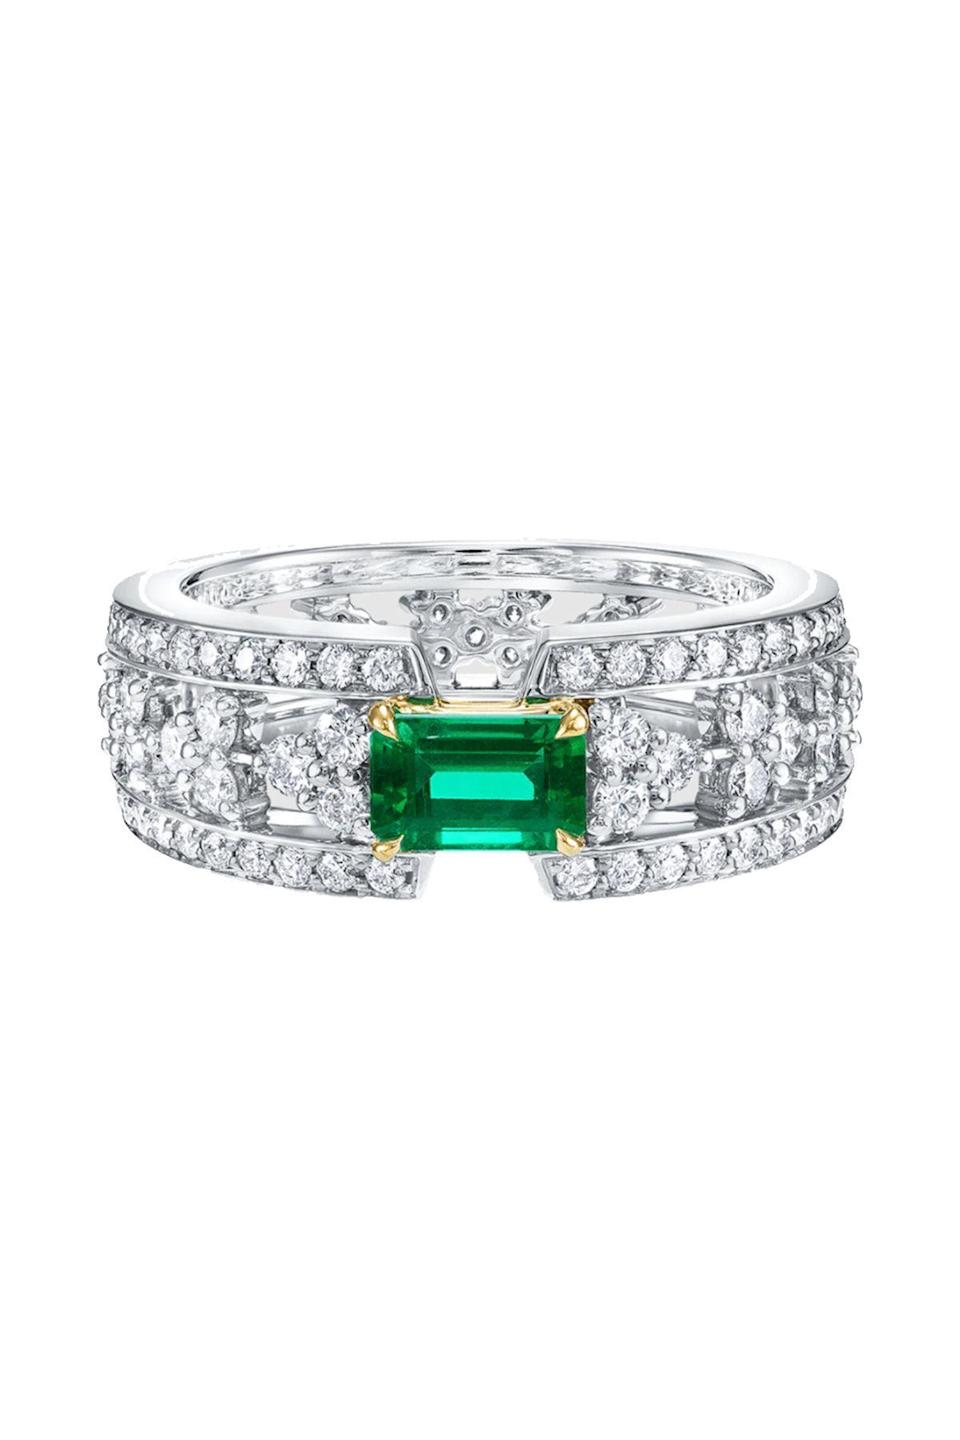 """<p><strong>Harry Winston</strong></p><p>harrywinston.com</p><p><a href=""""https://www.harrywinston.com/en/products/harry-winston-fashion-ring/emerald-and-diamond-ring-fremecddhwf"""" rel=""""nofollow noopener"""" target=""""_blank"""" data-ylk=""""slk:Shop Now"""" class=""""link rapid-noclick-resp"""">Shop Now</a></p><p>Trust the jewelers at Harry Winston to know their way around a diamond ring. This glittering band made from 139 diamonds is perfectly set off with an emerald. </p>"""